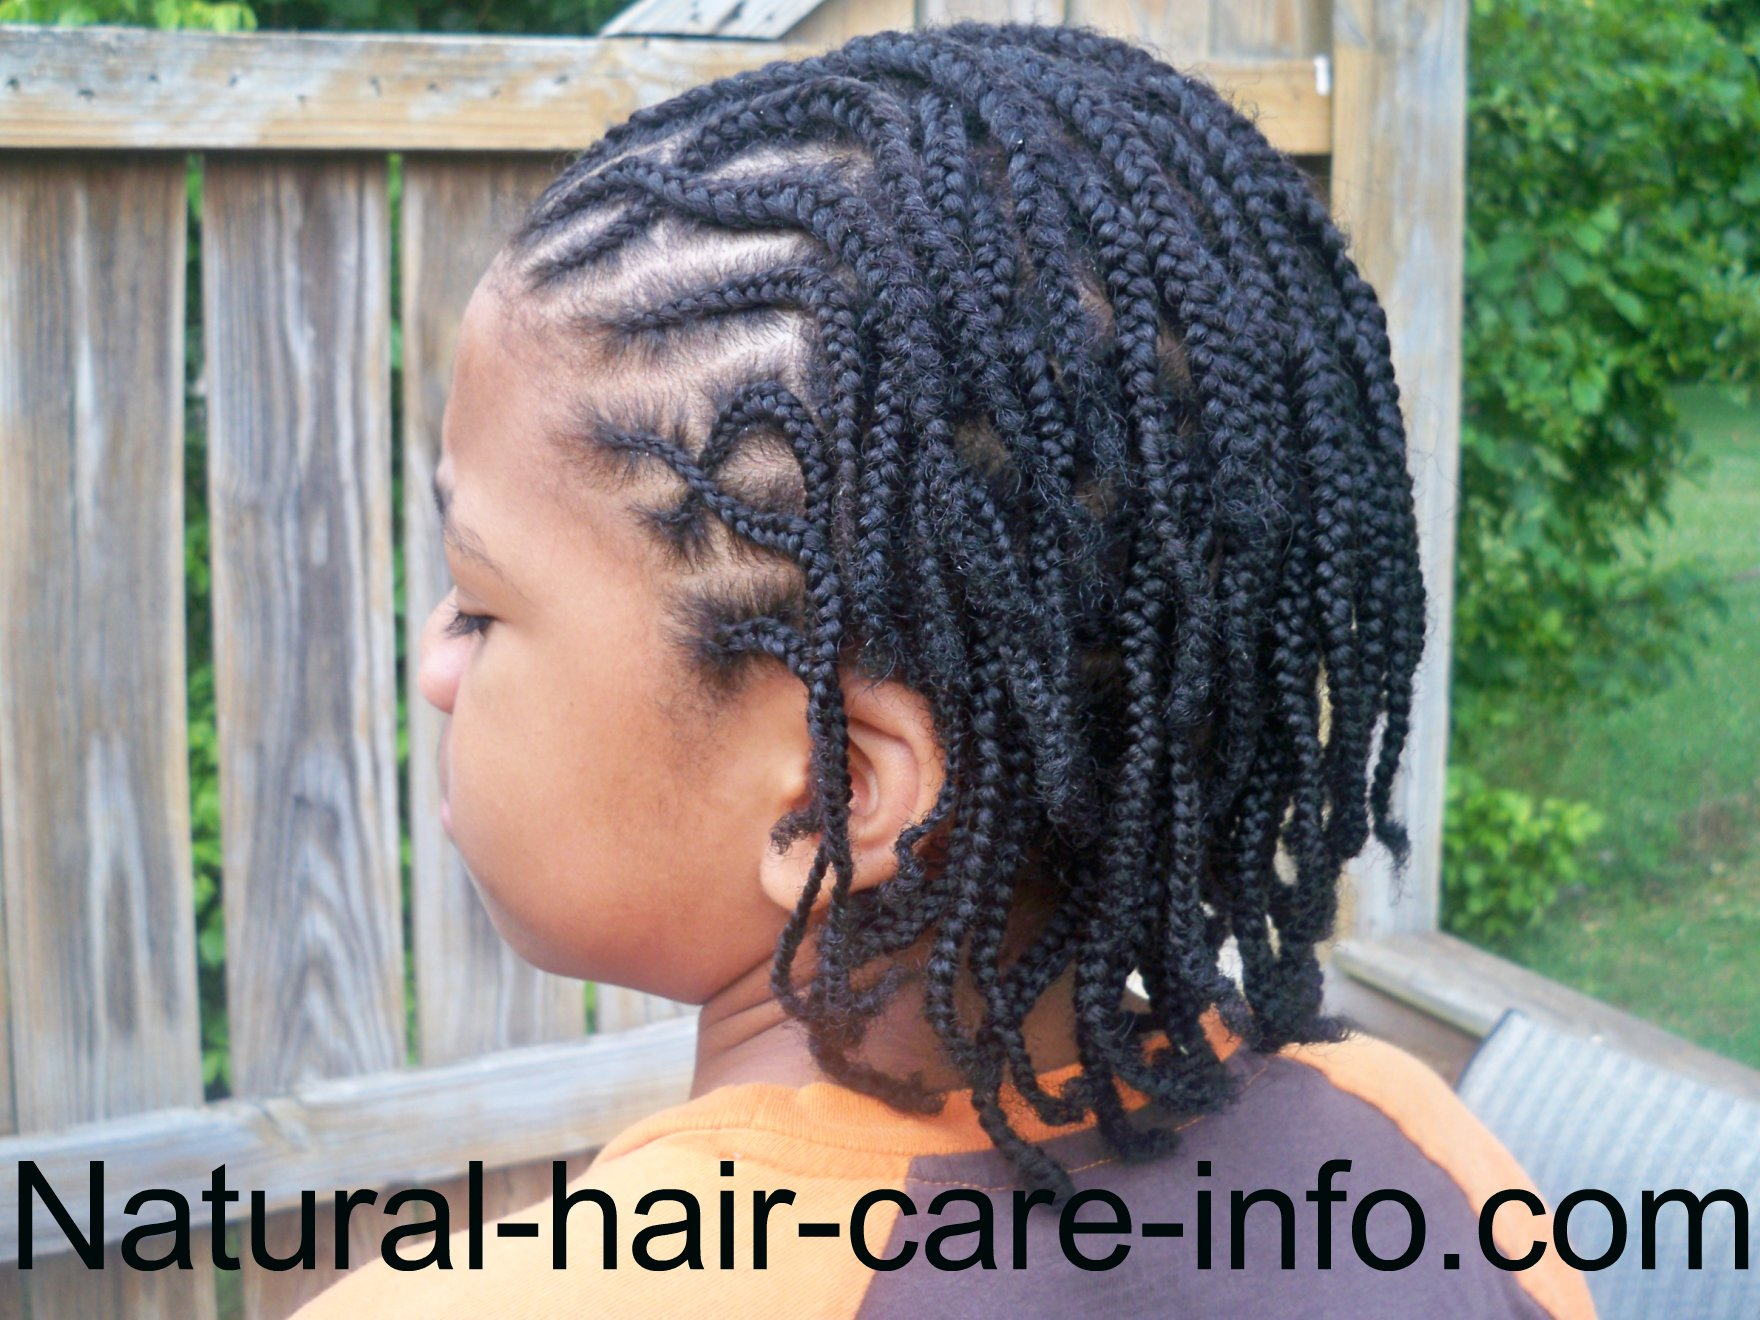 Awe Inspiring Braid Hairstyles For Men Complete List And Tutorials Hairstyles For Men Maxibearus